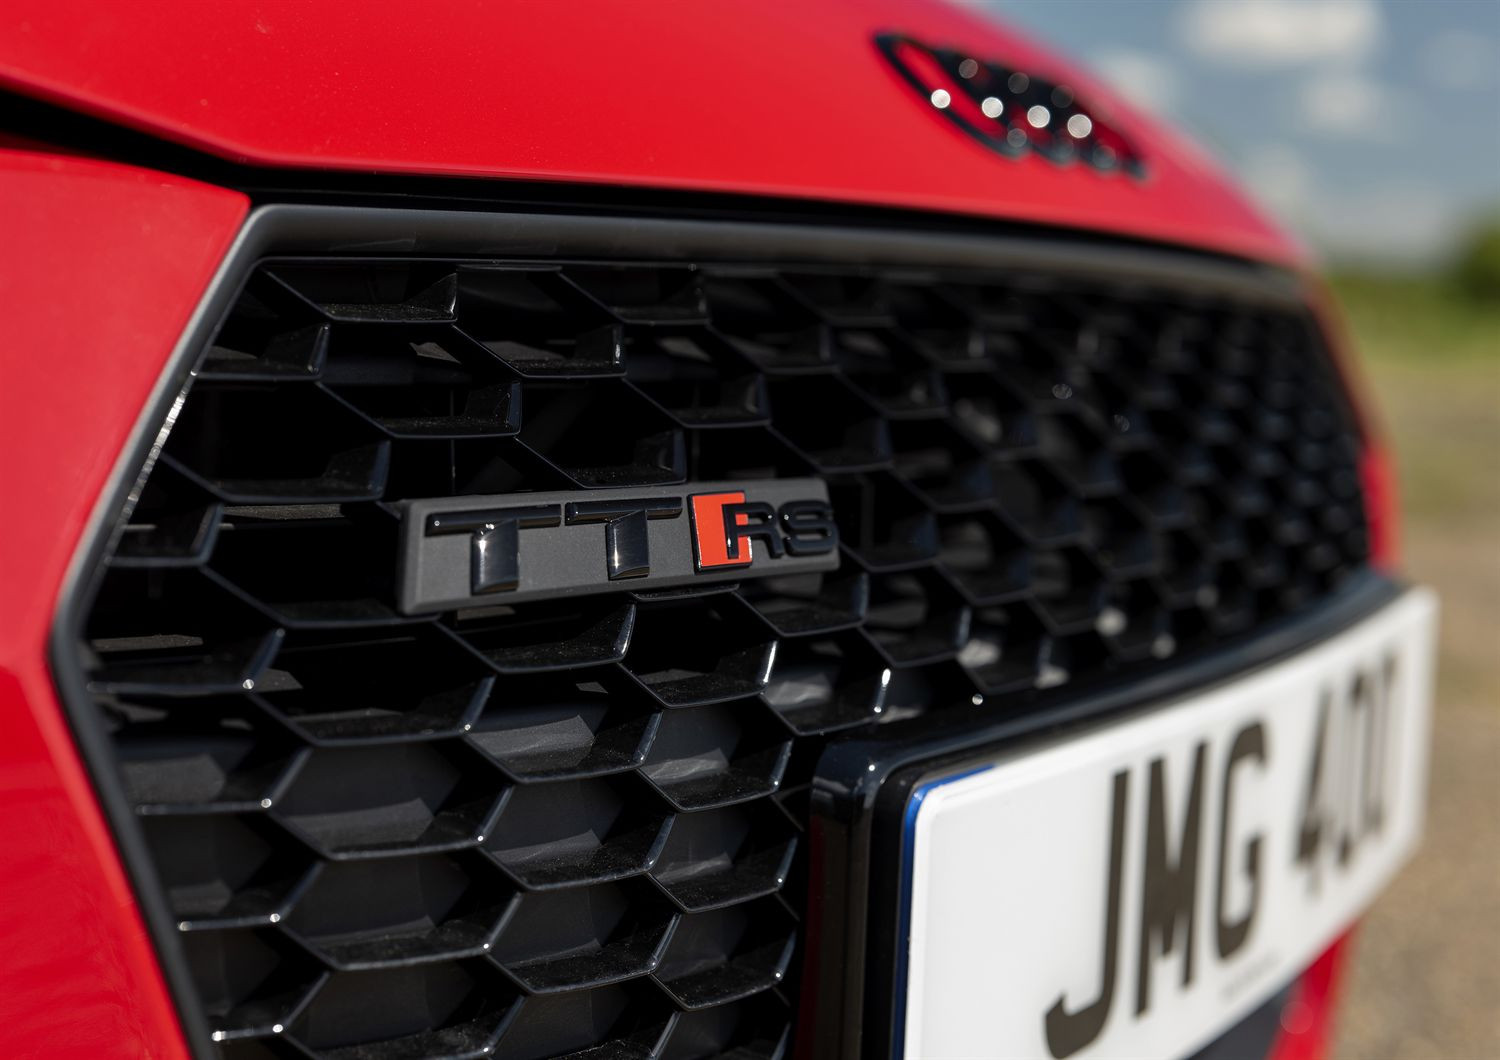 Close up of TT RS badge on the front grille